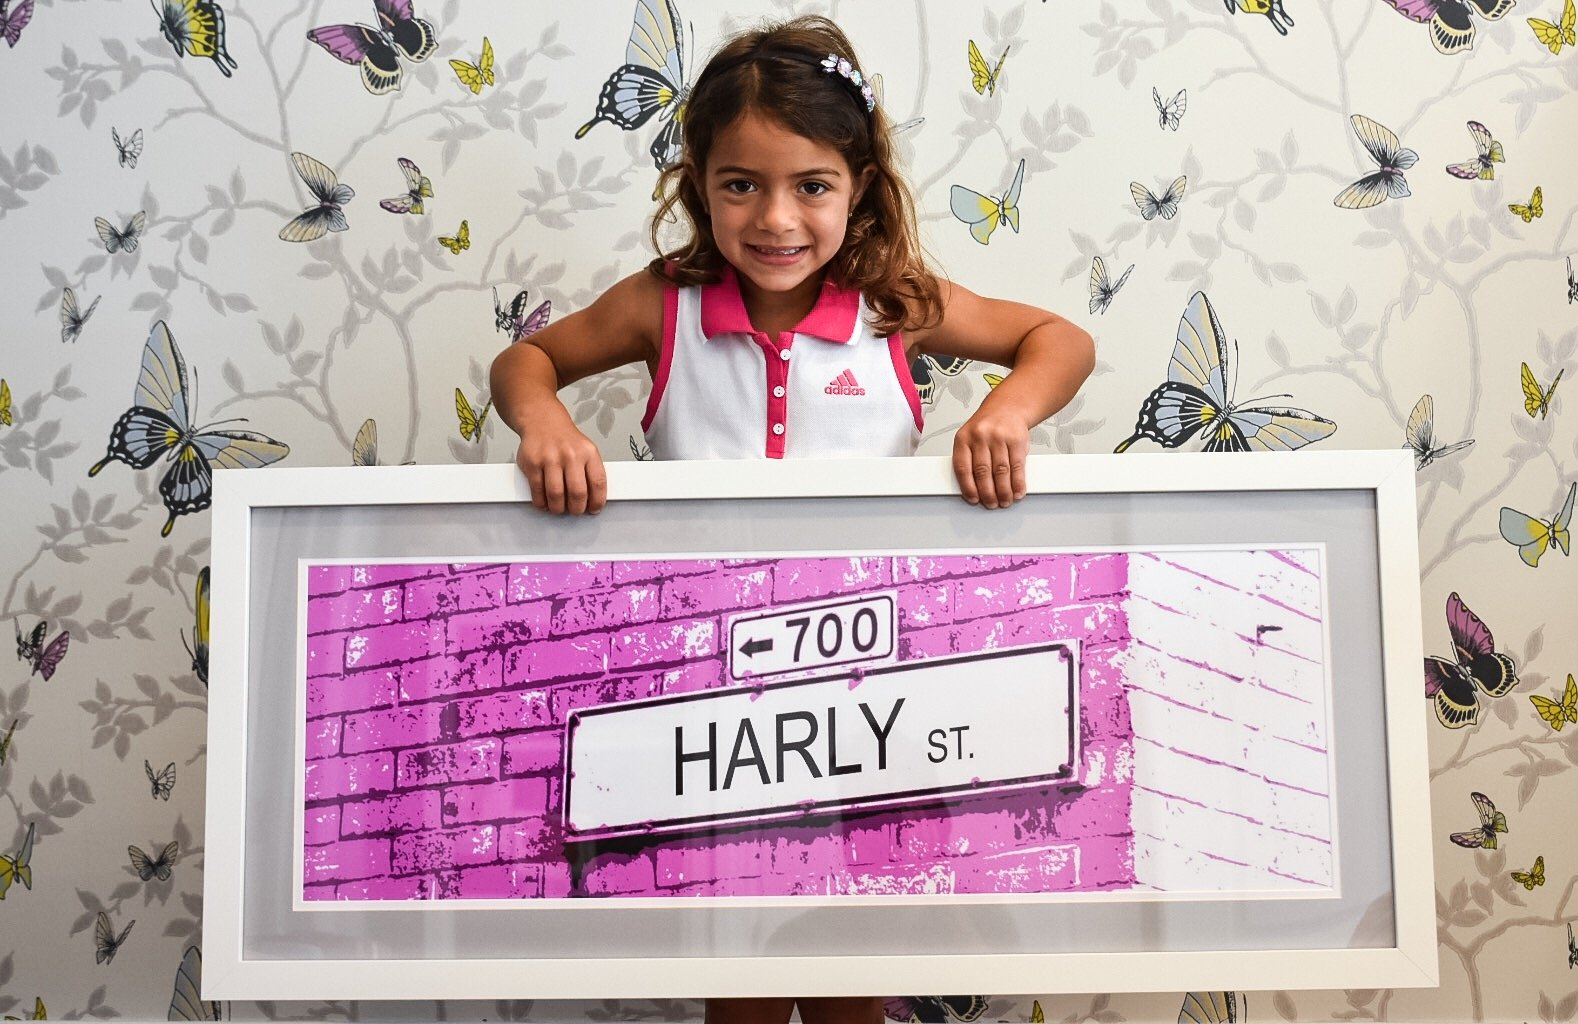 Personalized Brick Wall Street Sign Wall Art by deSIGNable Images